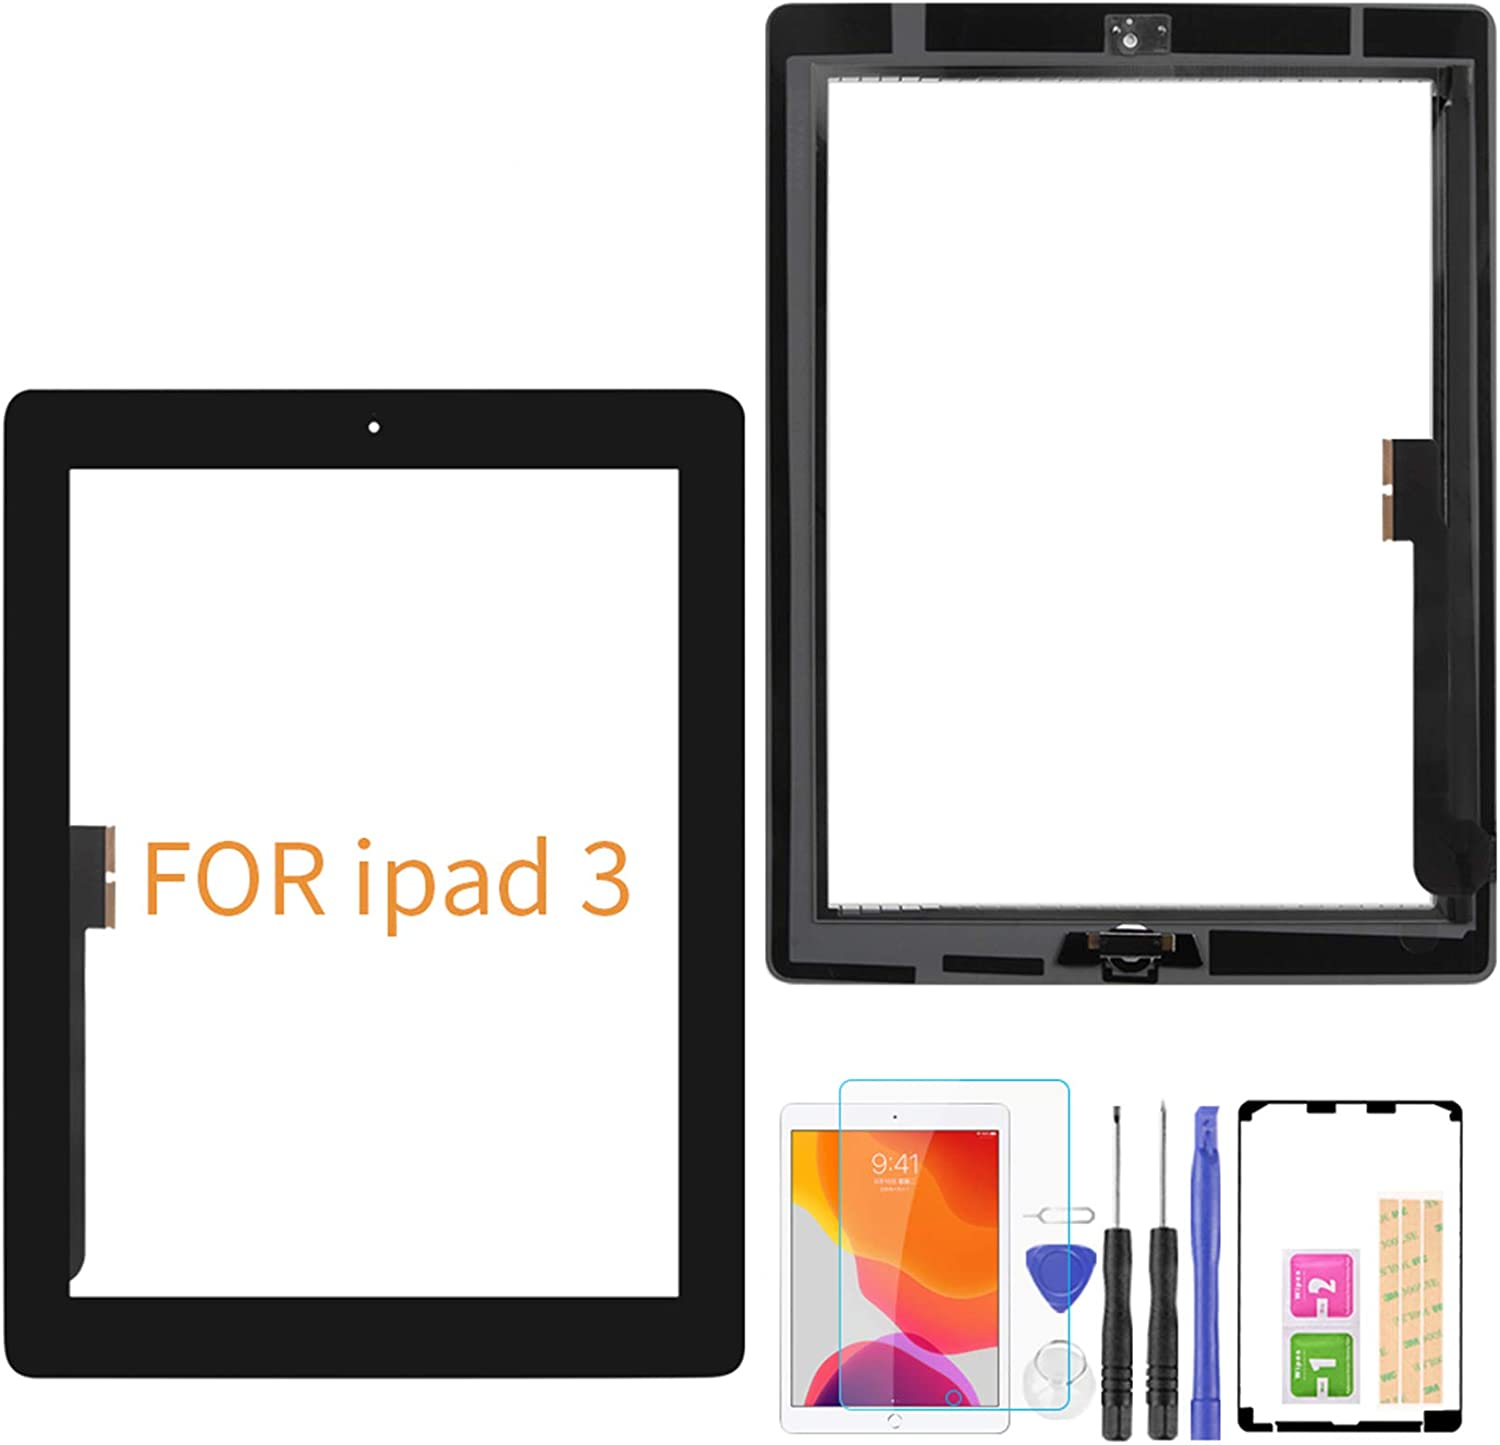 A-MIND for iPad 3 A1416 A1430 A1403 Touch Screen Replacement,with Free Tool Kits+Screen Protector (No LCD, No Instructions) Front Glass Panel Replacement (Black)